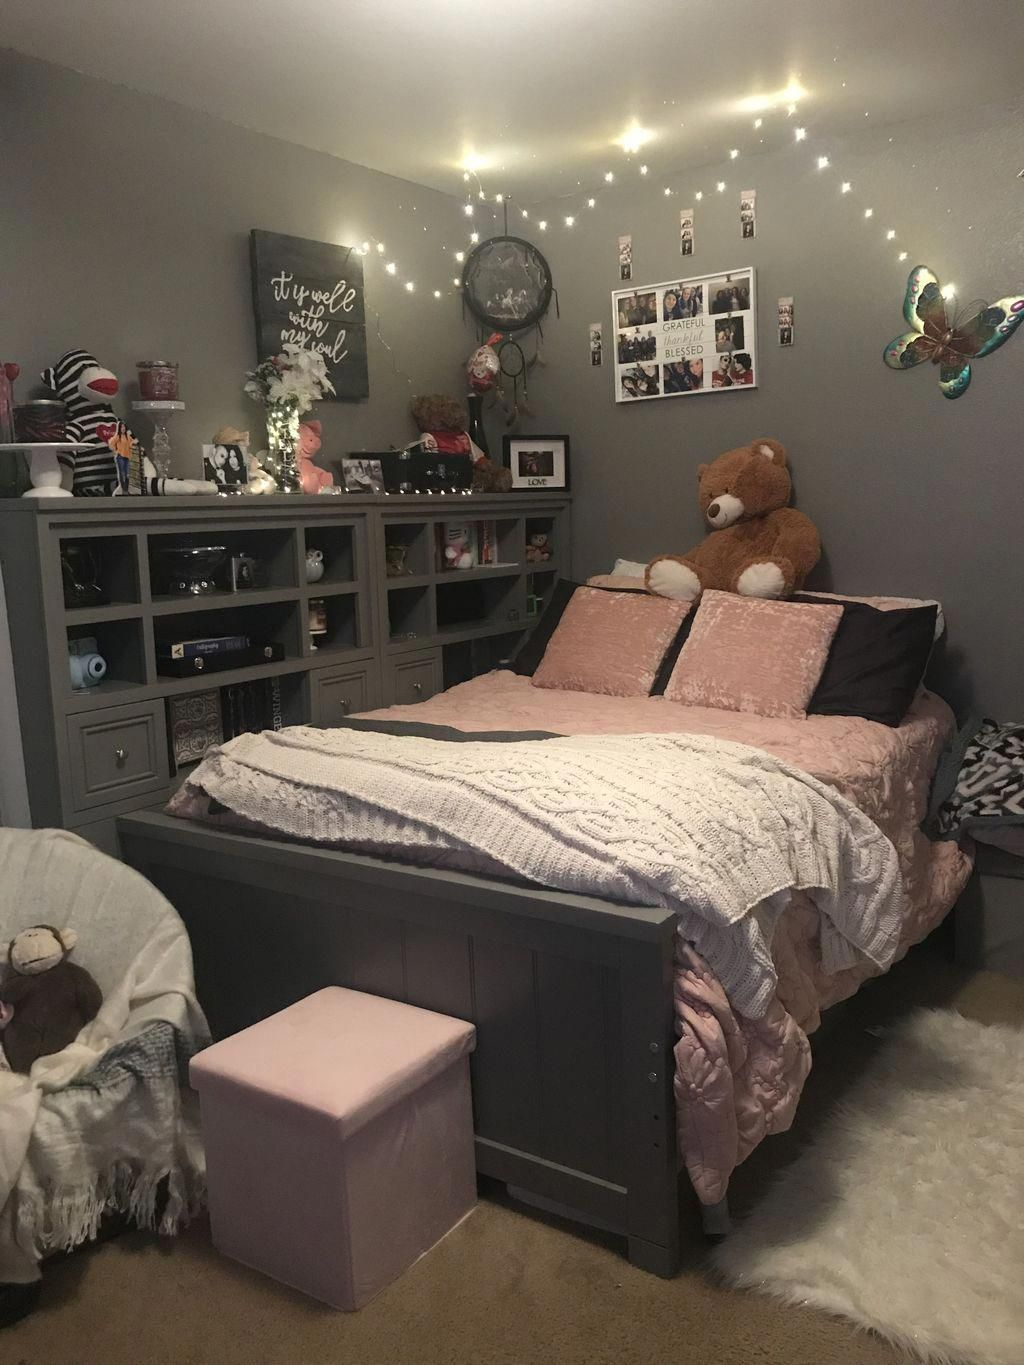 30+ Girly But Unique Girl Bedroom Design Ideas | Small ...